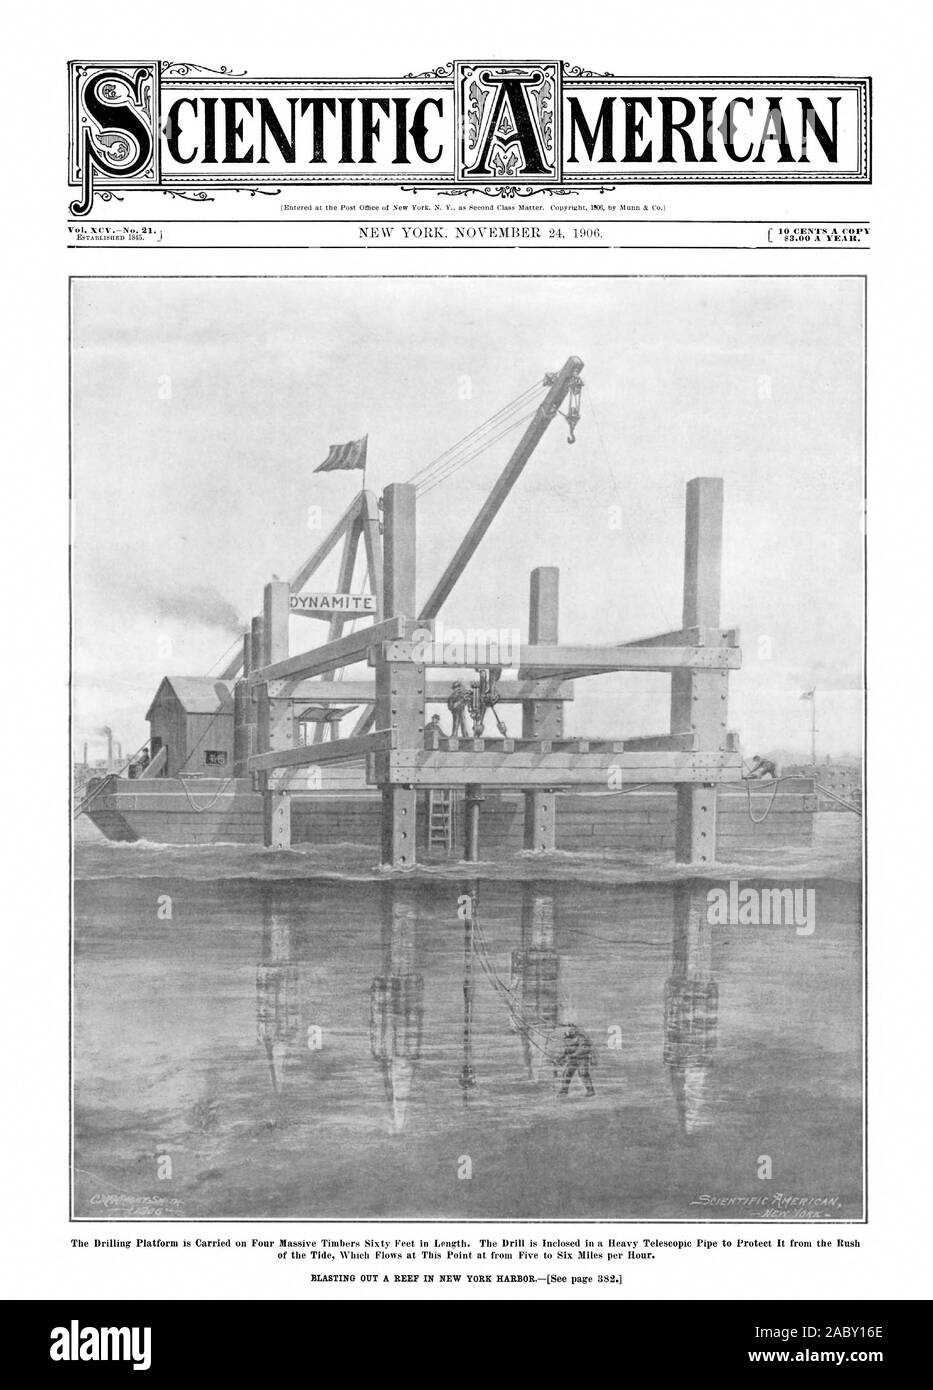 The Drilling Platform is Carried on Four Massive Timbers Sixty Peet in Length. The Drill is Inclosed in a Heavy Telescopic Pipe to Protect It from the Rush CIENTIFIC MERICAN, scientific american, 1906-11-24 Stock Photo